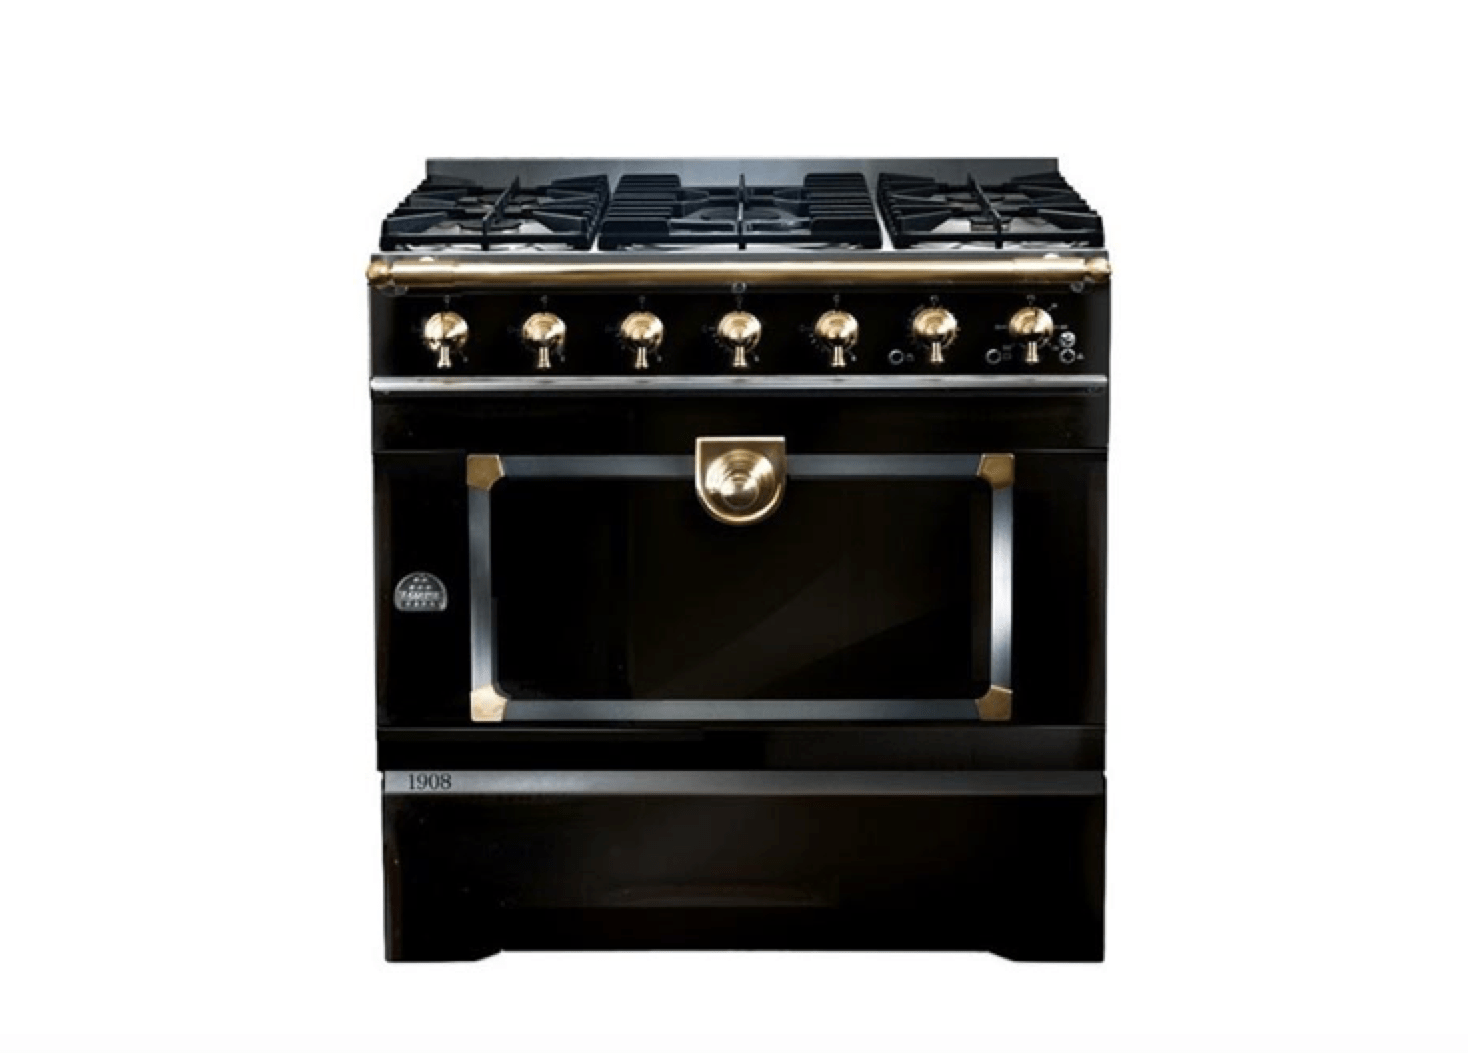 Remodeling 101 8 Sources for Used HighEnd Appliances